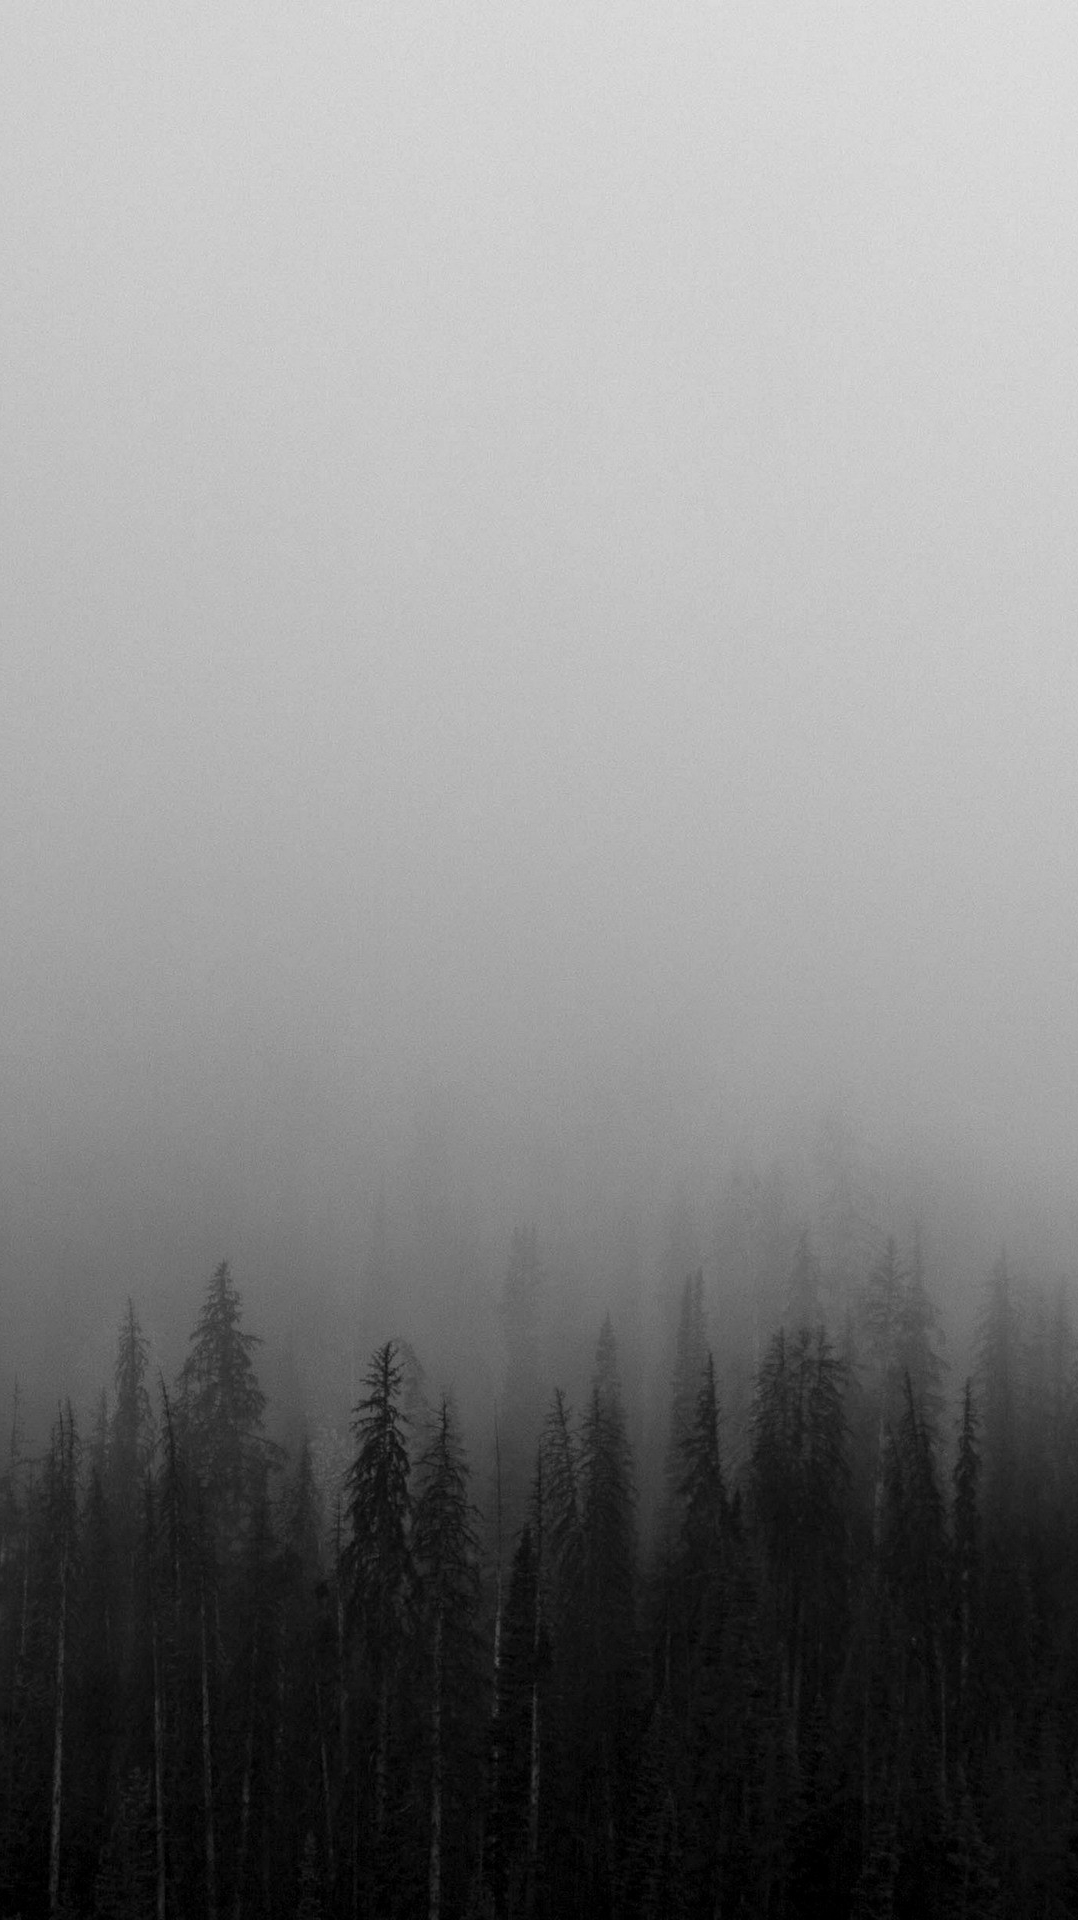 Download Sad Wallpapers With Beautiful Quotes Black And White Mist Forests Wallpaper Iphone Wallpapers